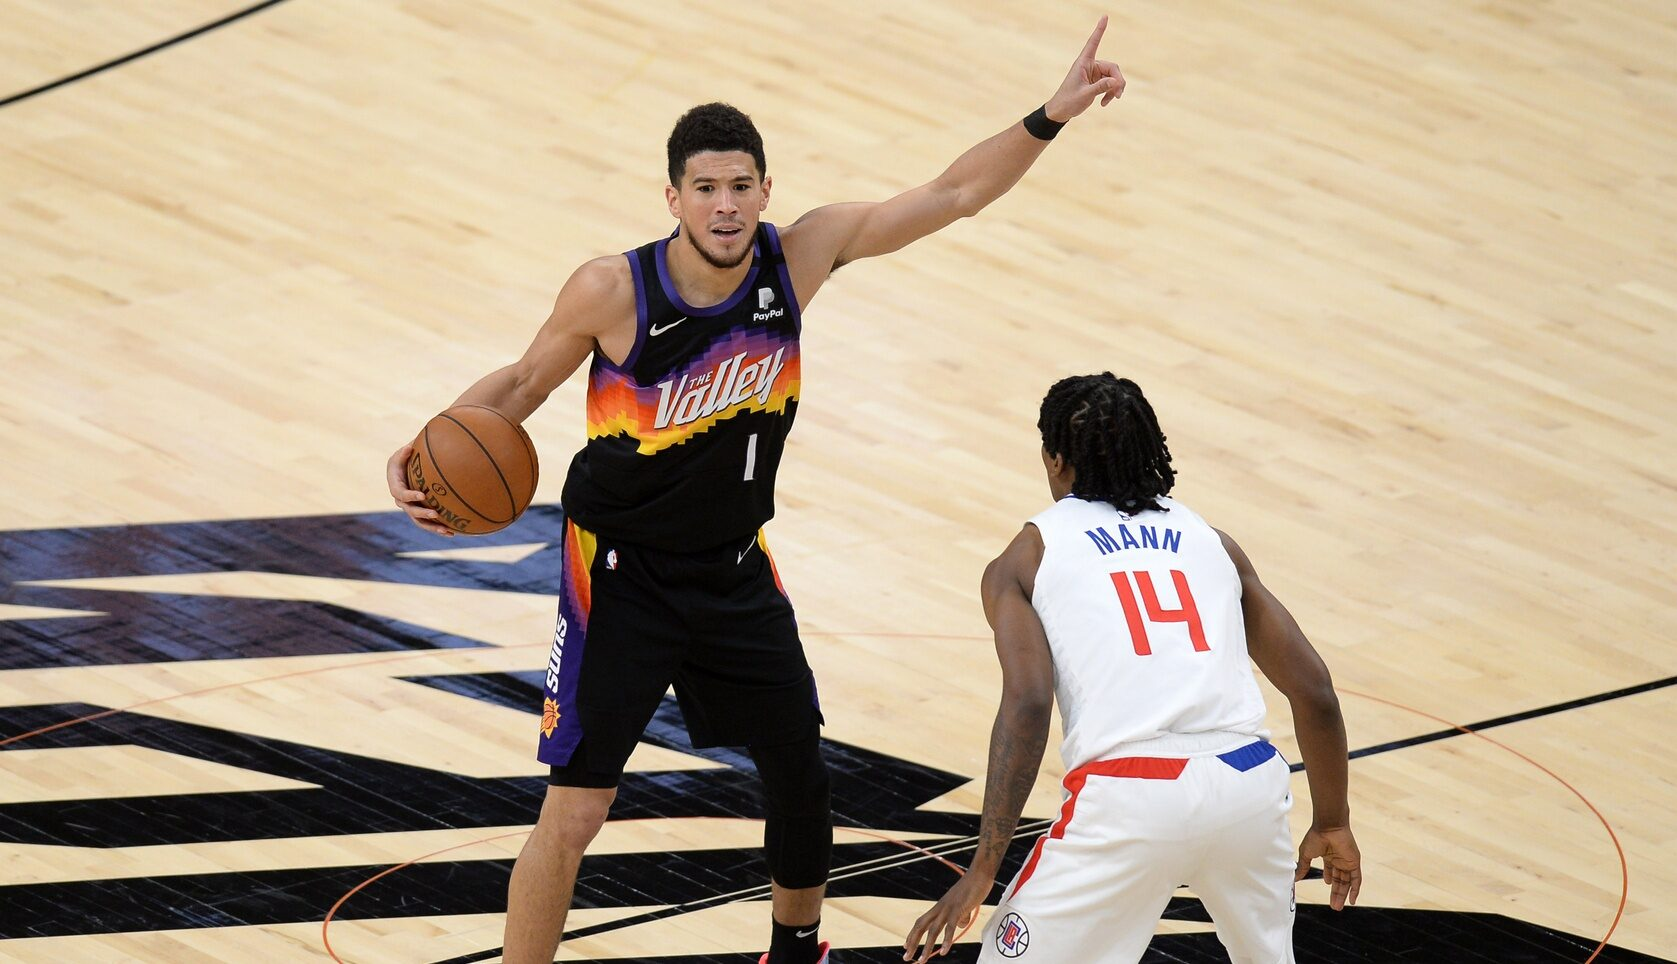 Inside the NBA: Booker shows superstar stuff in Game 1 win